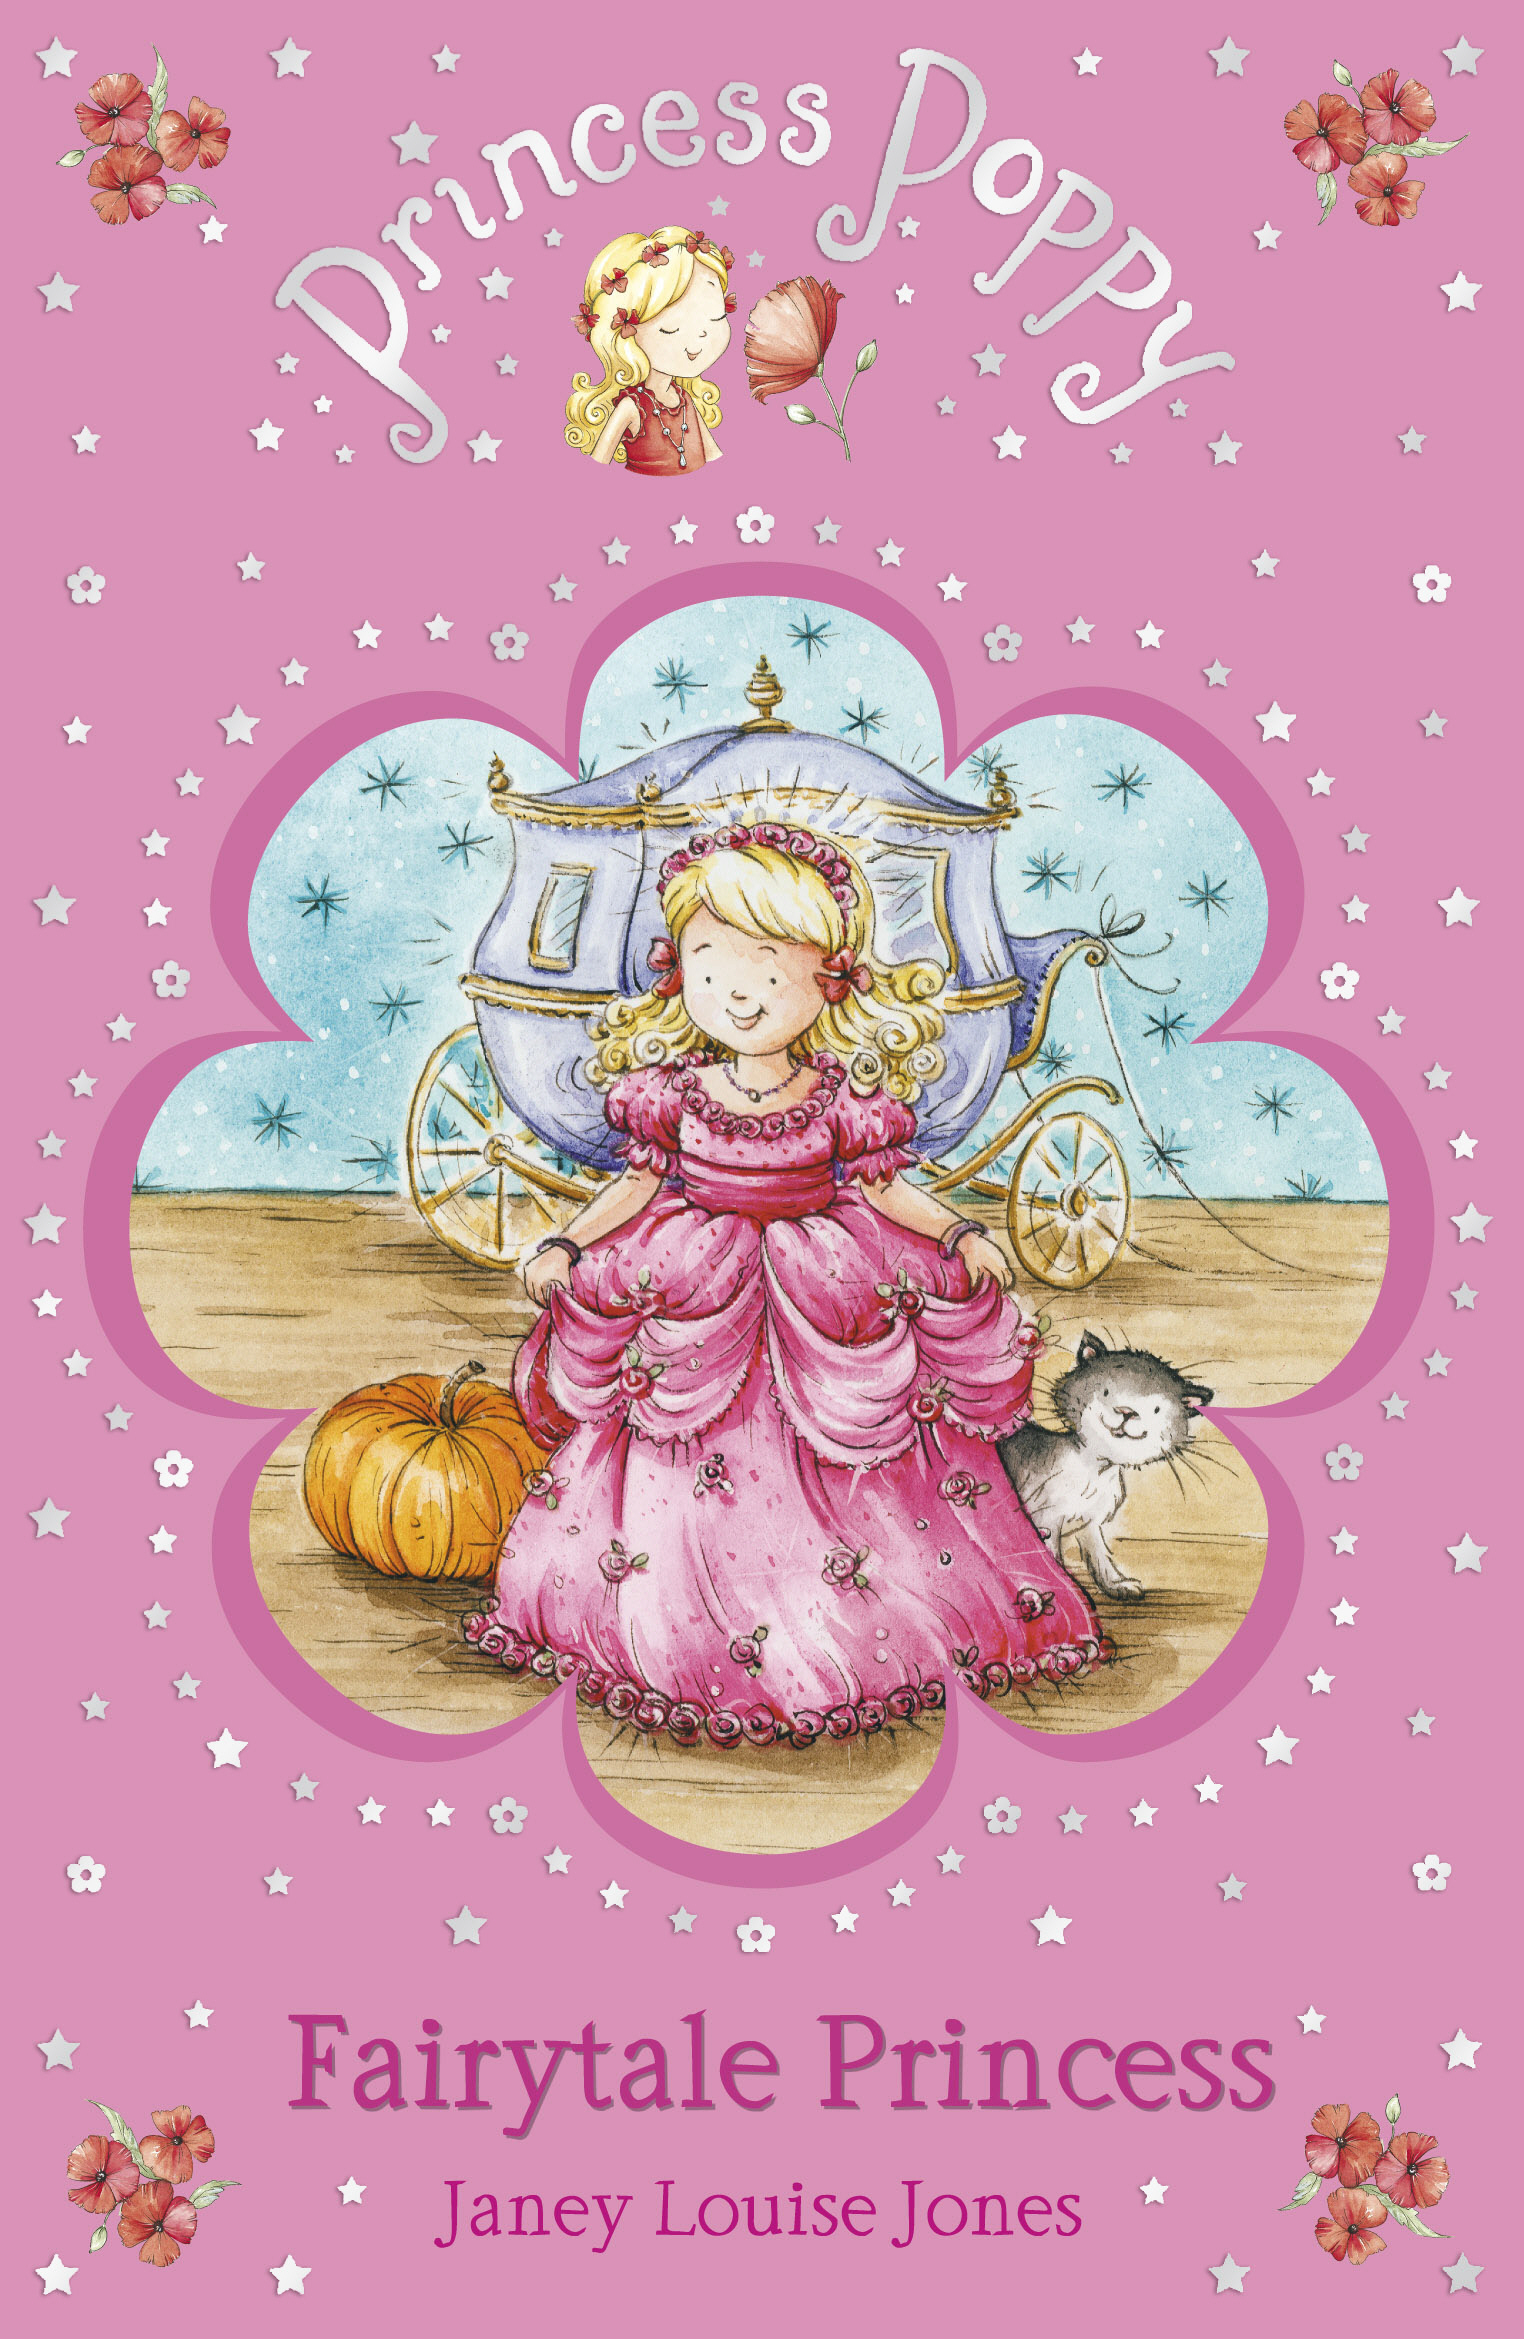 Princess Poppy Fairytale Princess By: Janey Louise Jones,Samantha Chaffey